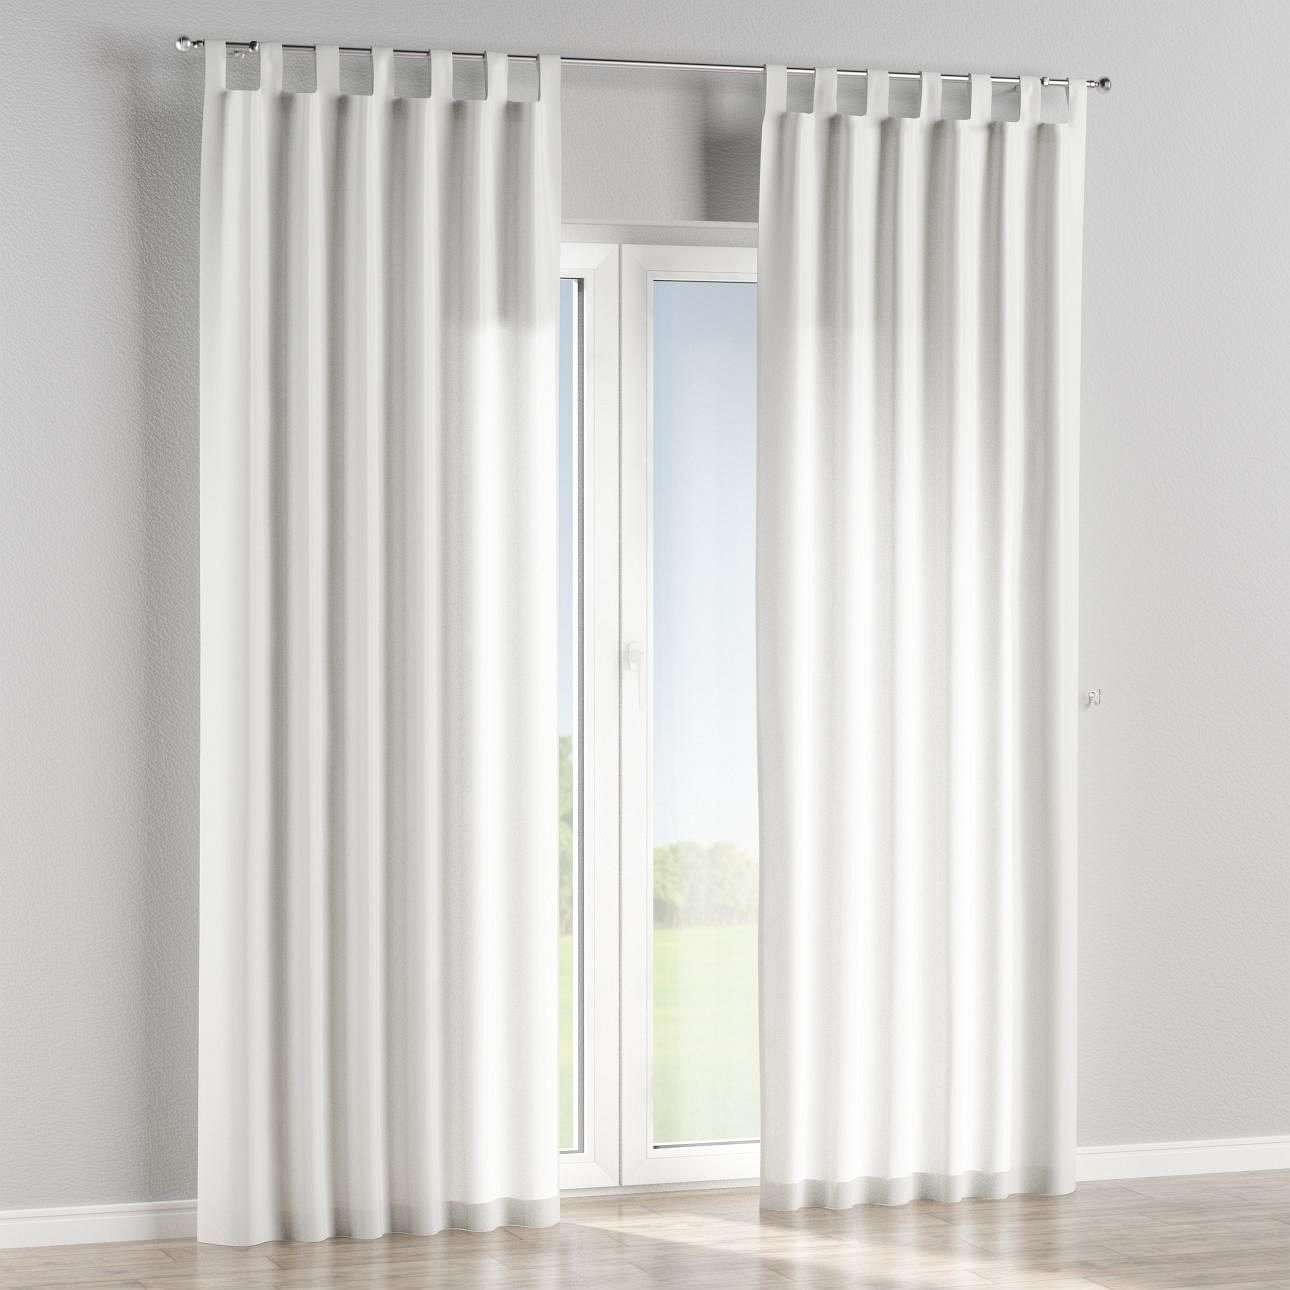 Tab top curtains in collection Milano, fabric: 150-37